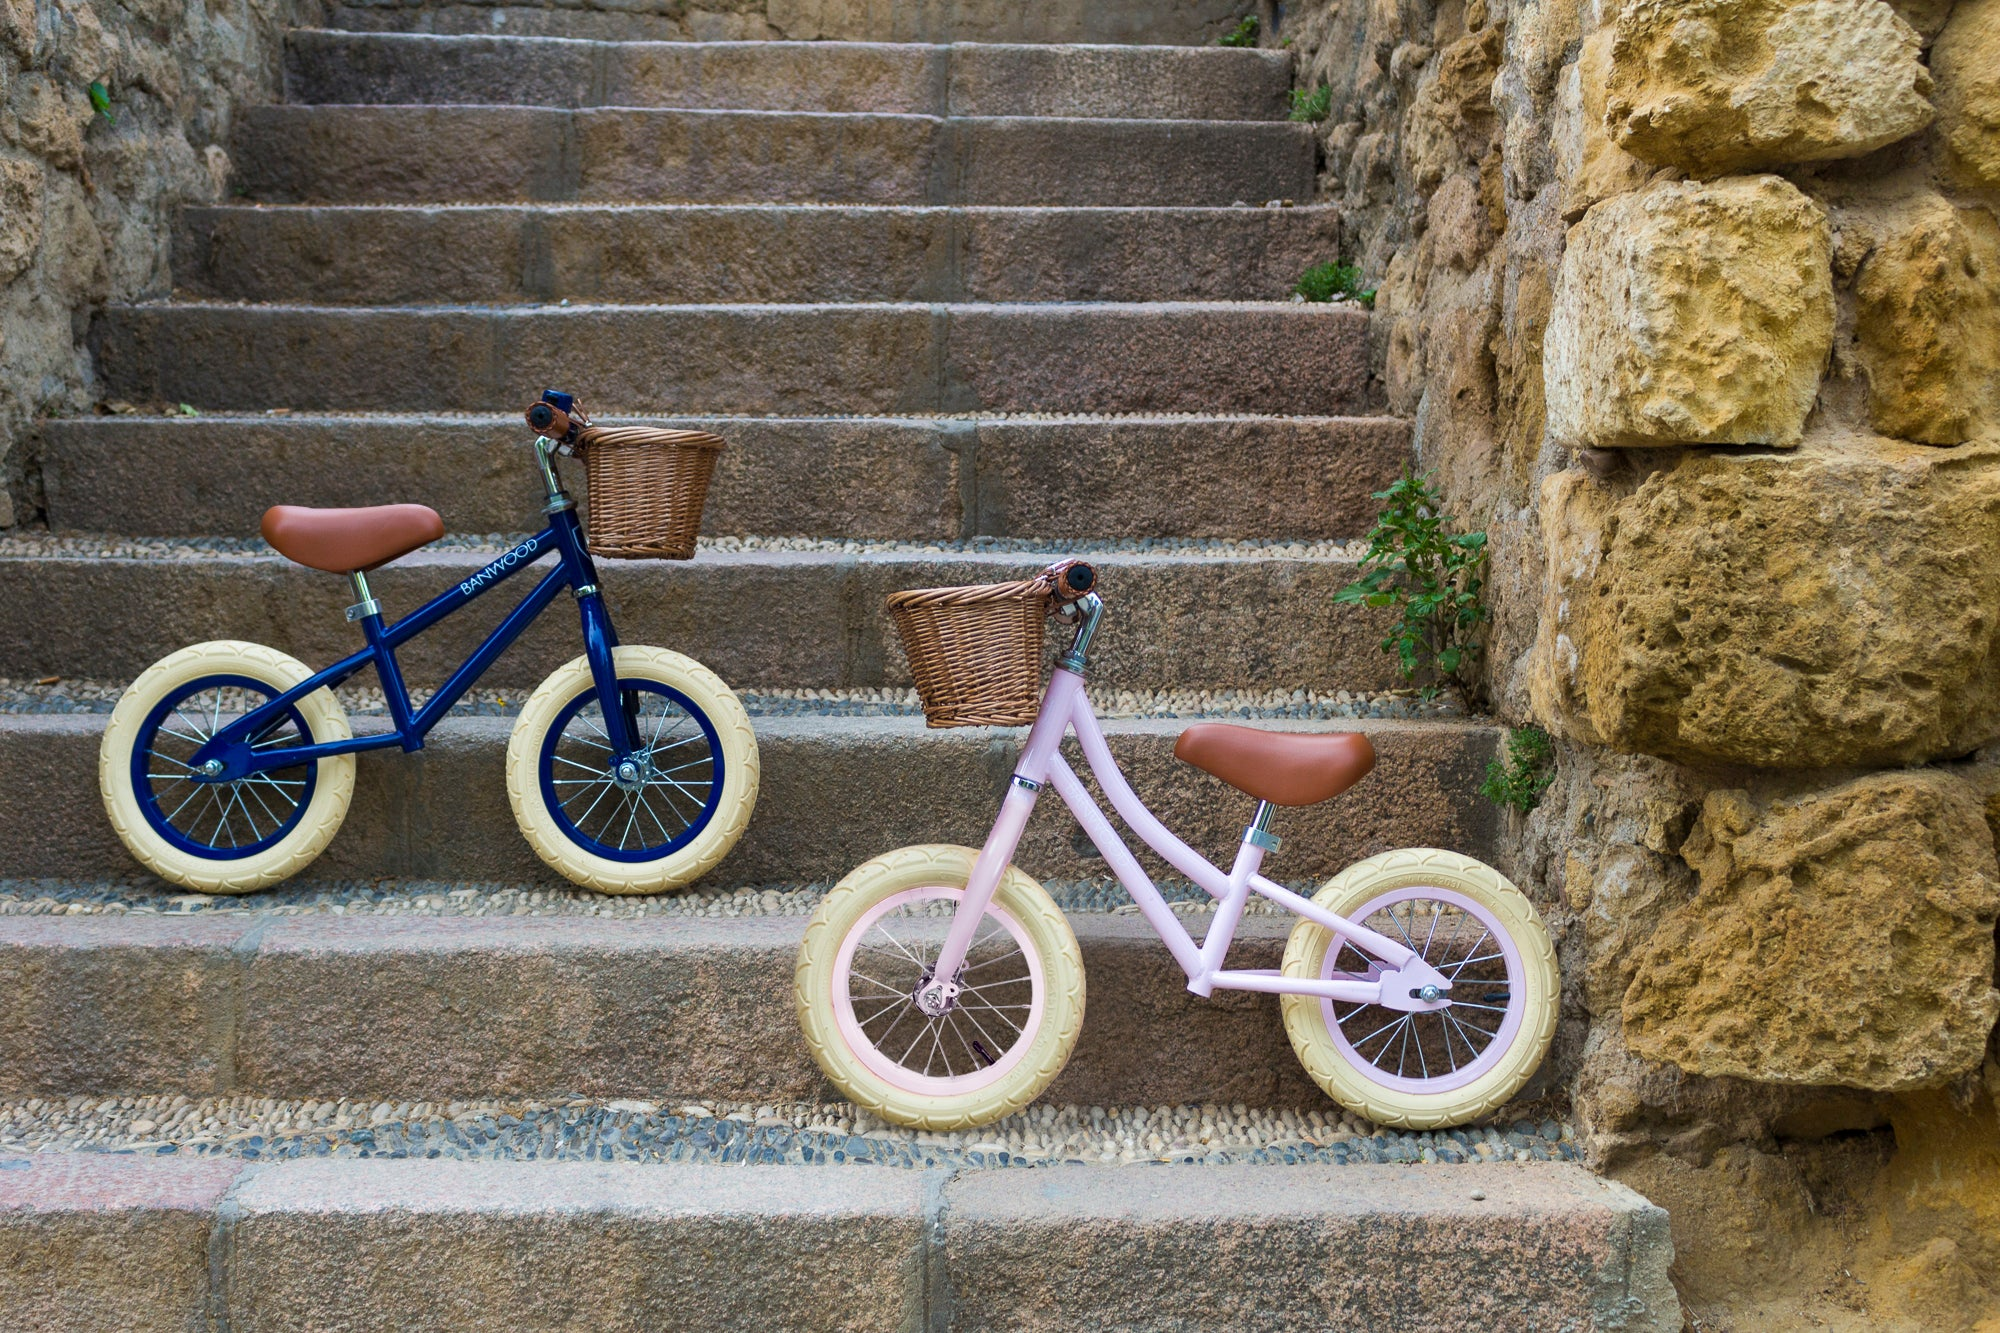 BANWOOD FIRST GO BALANCE BIKES FOR CHILDREN BIG DREAMS